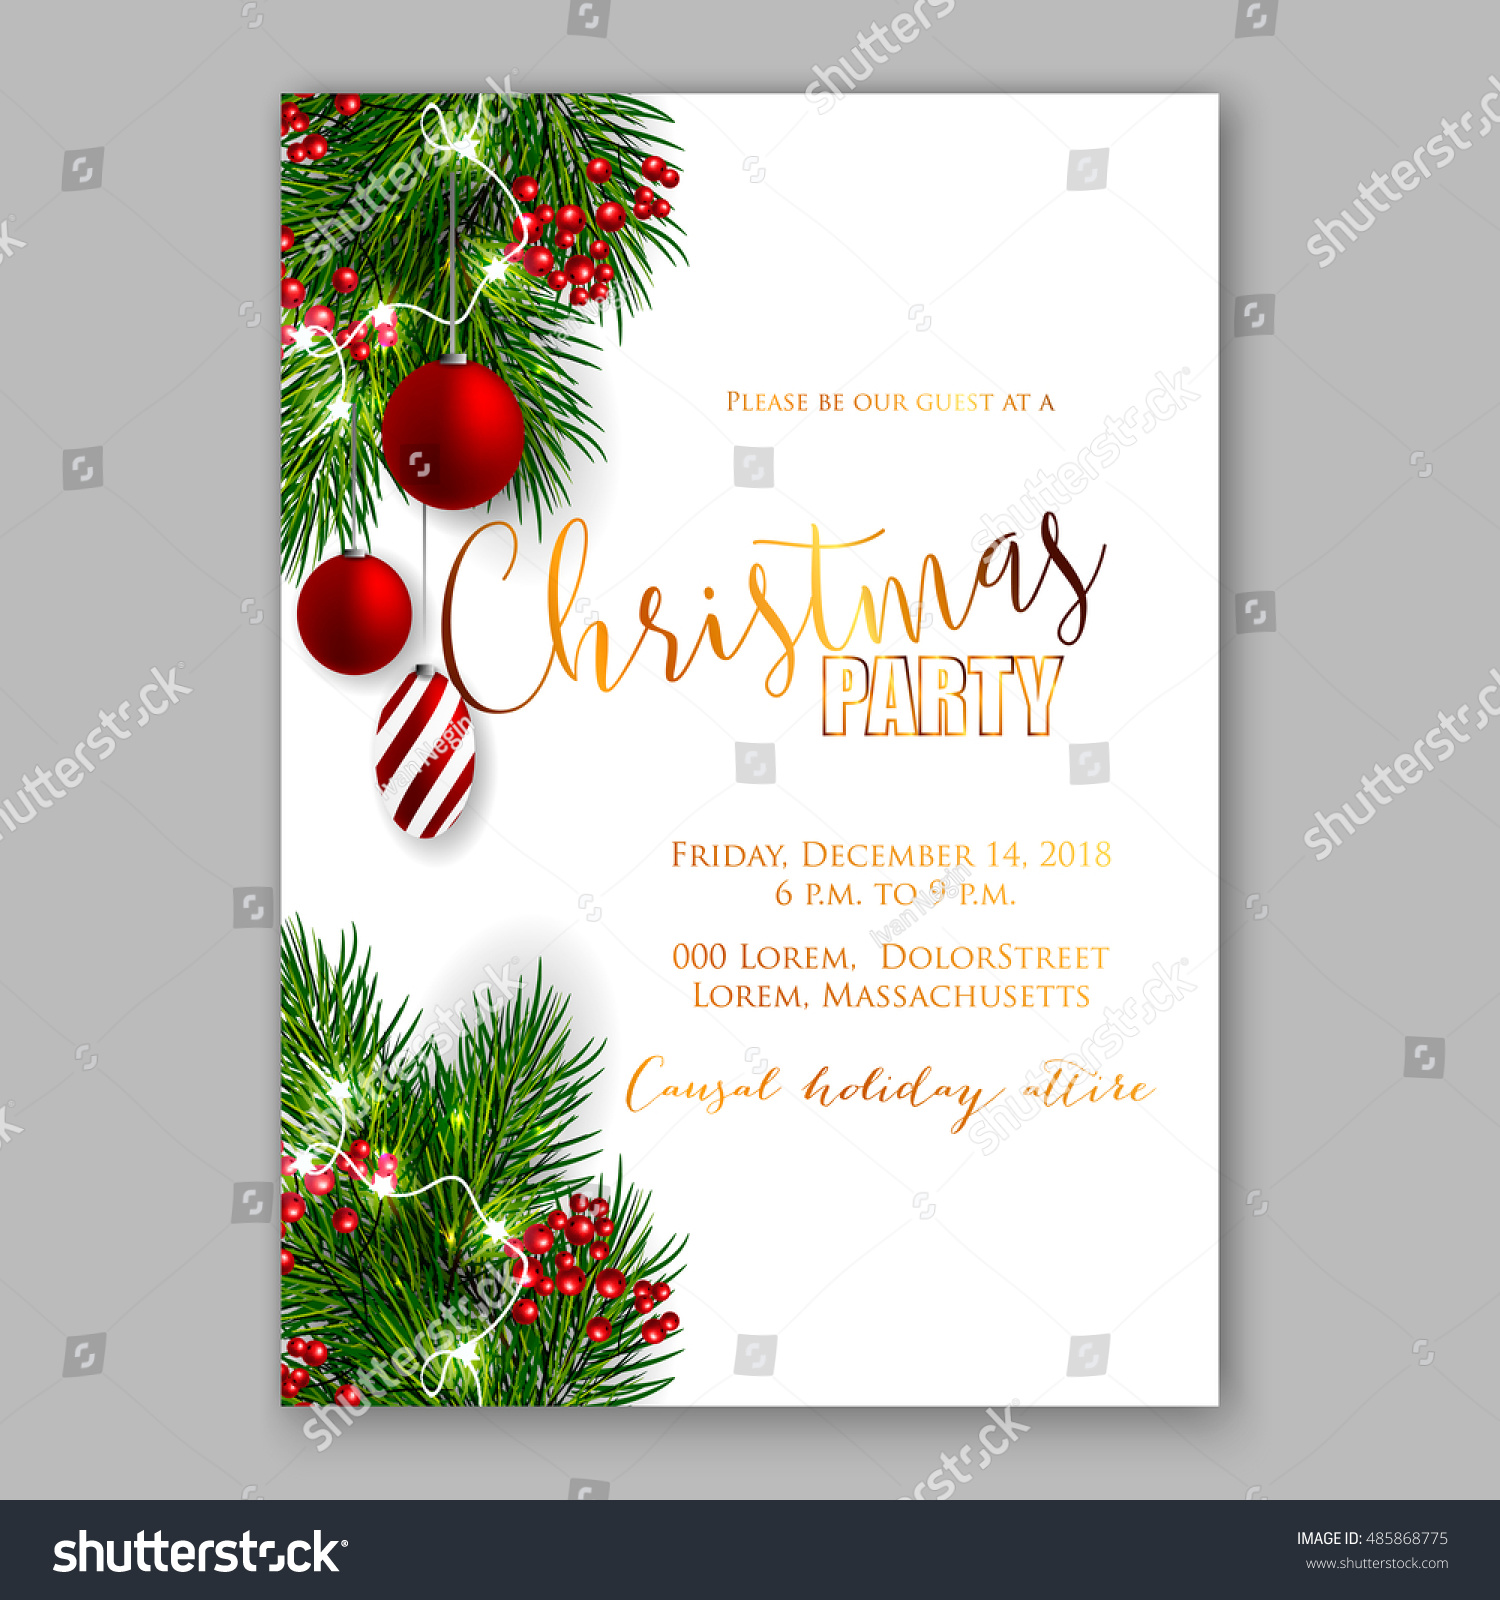 Christmas Party Invitation Template Background Fir Stock Vector ...